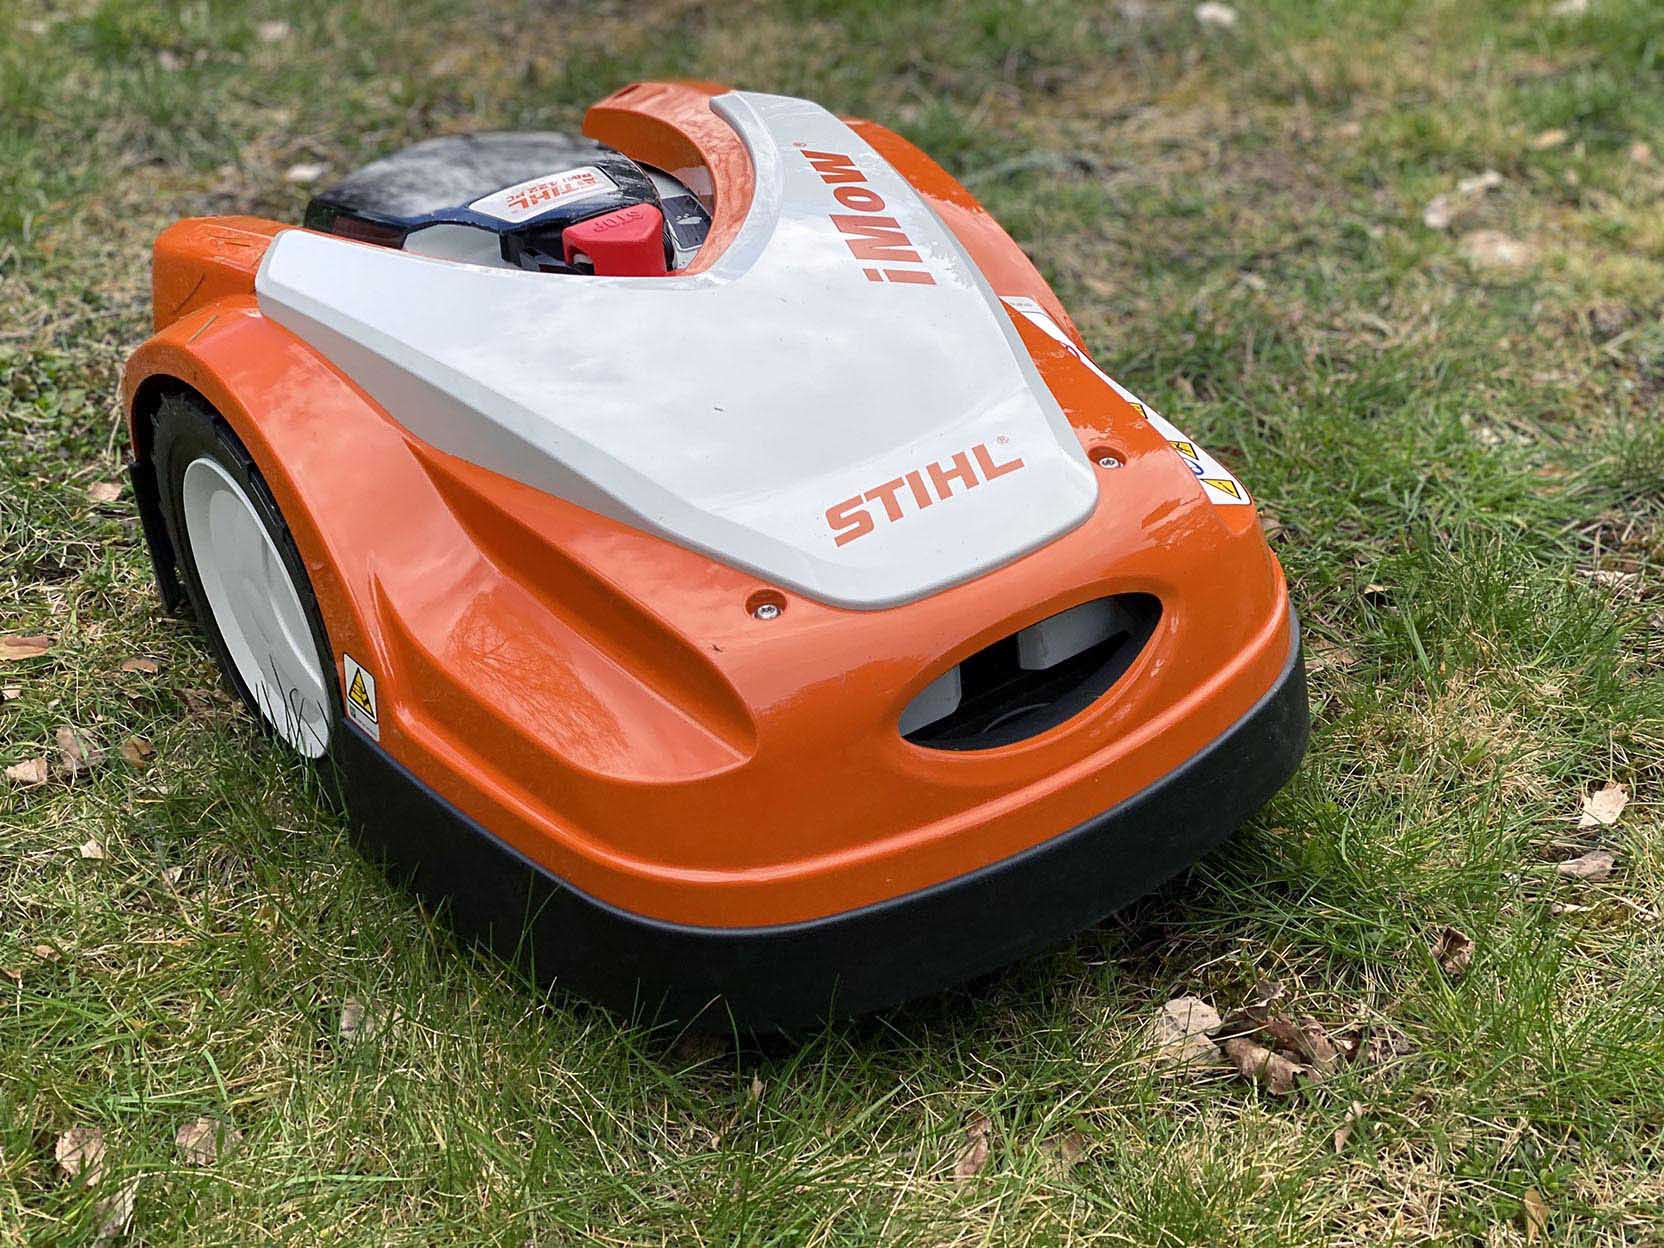 The Stihl iMow RMI 422 PC is a compact and light robotic lawn mower with a good user interface